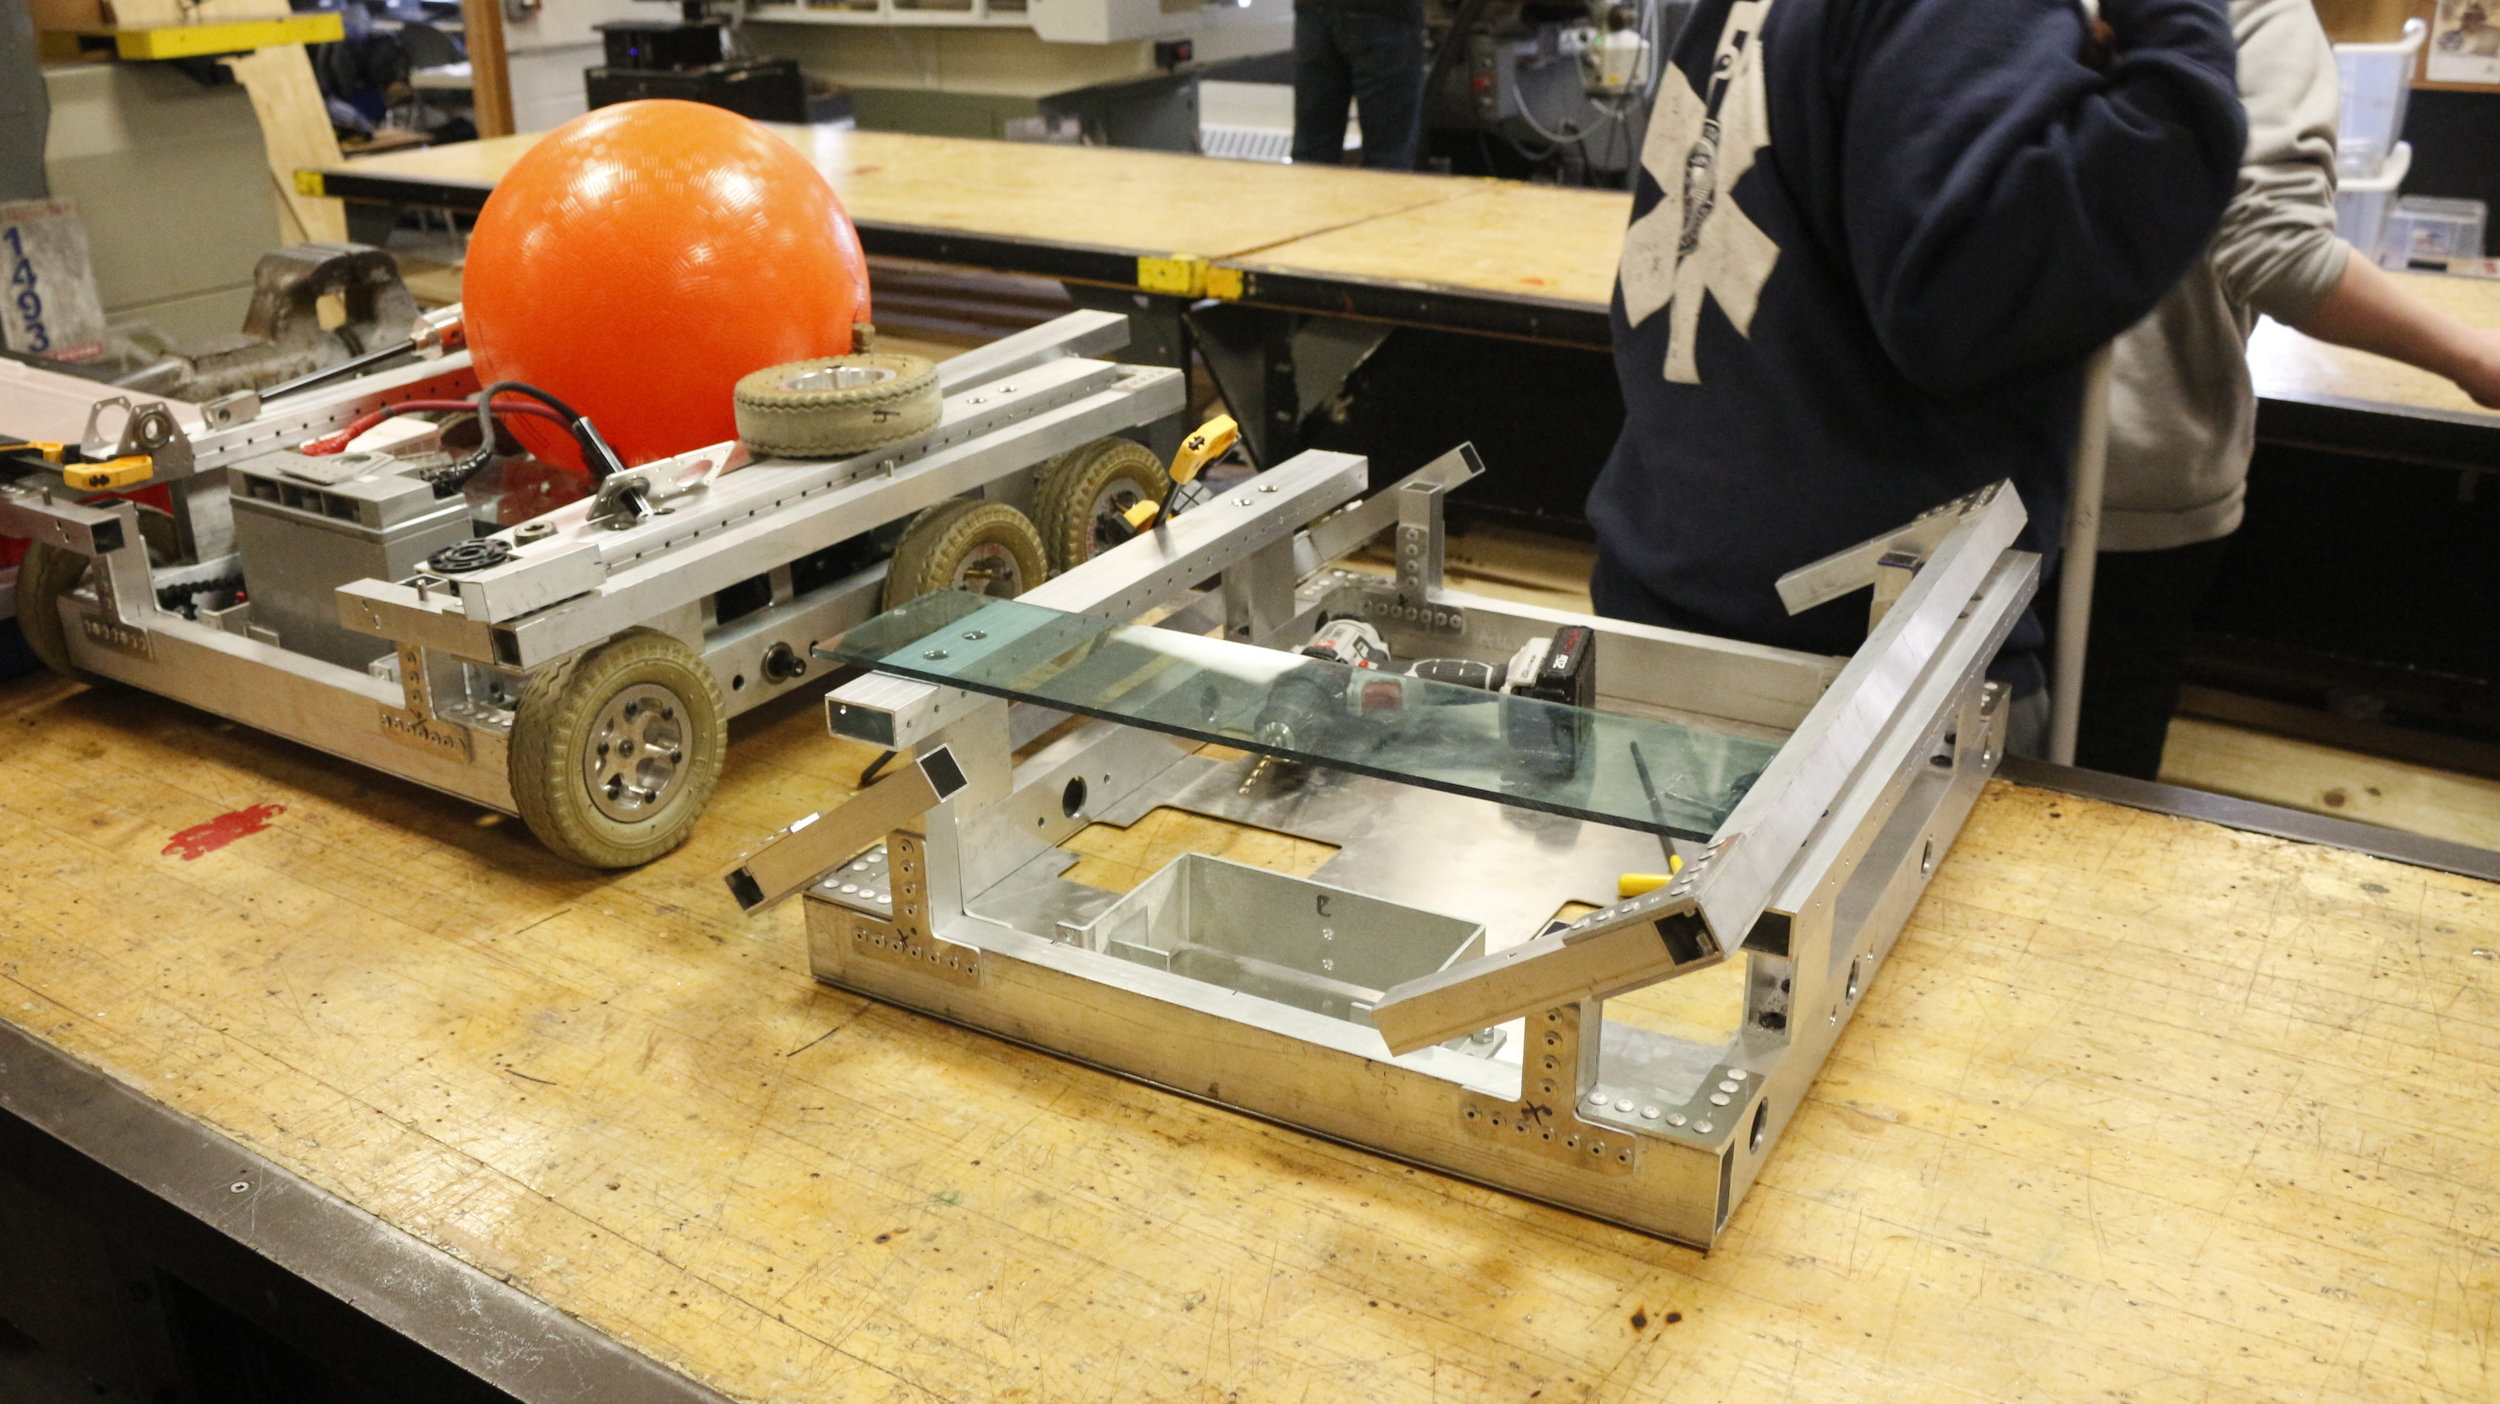 - The Competition Robot frame on the left and the Practice Robot frame on the right.